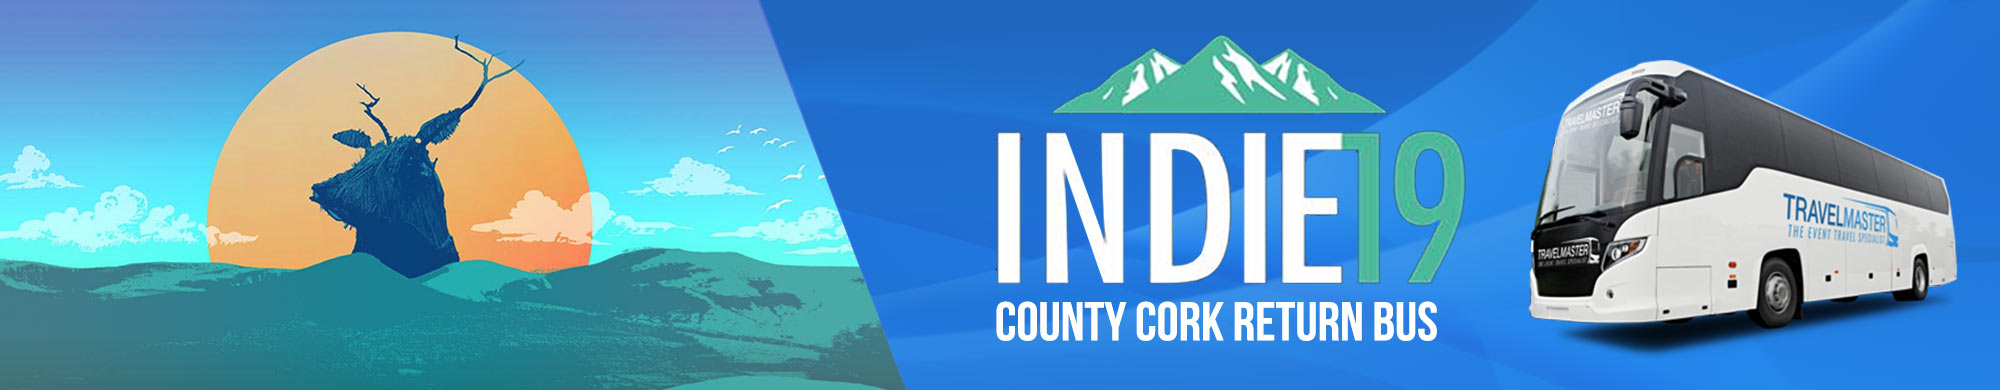 Bus to Indiependence 2019 Indie 19 - Cork County